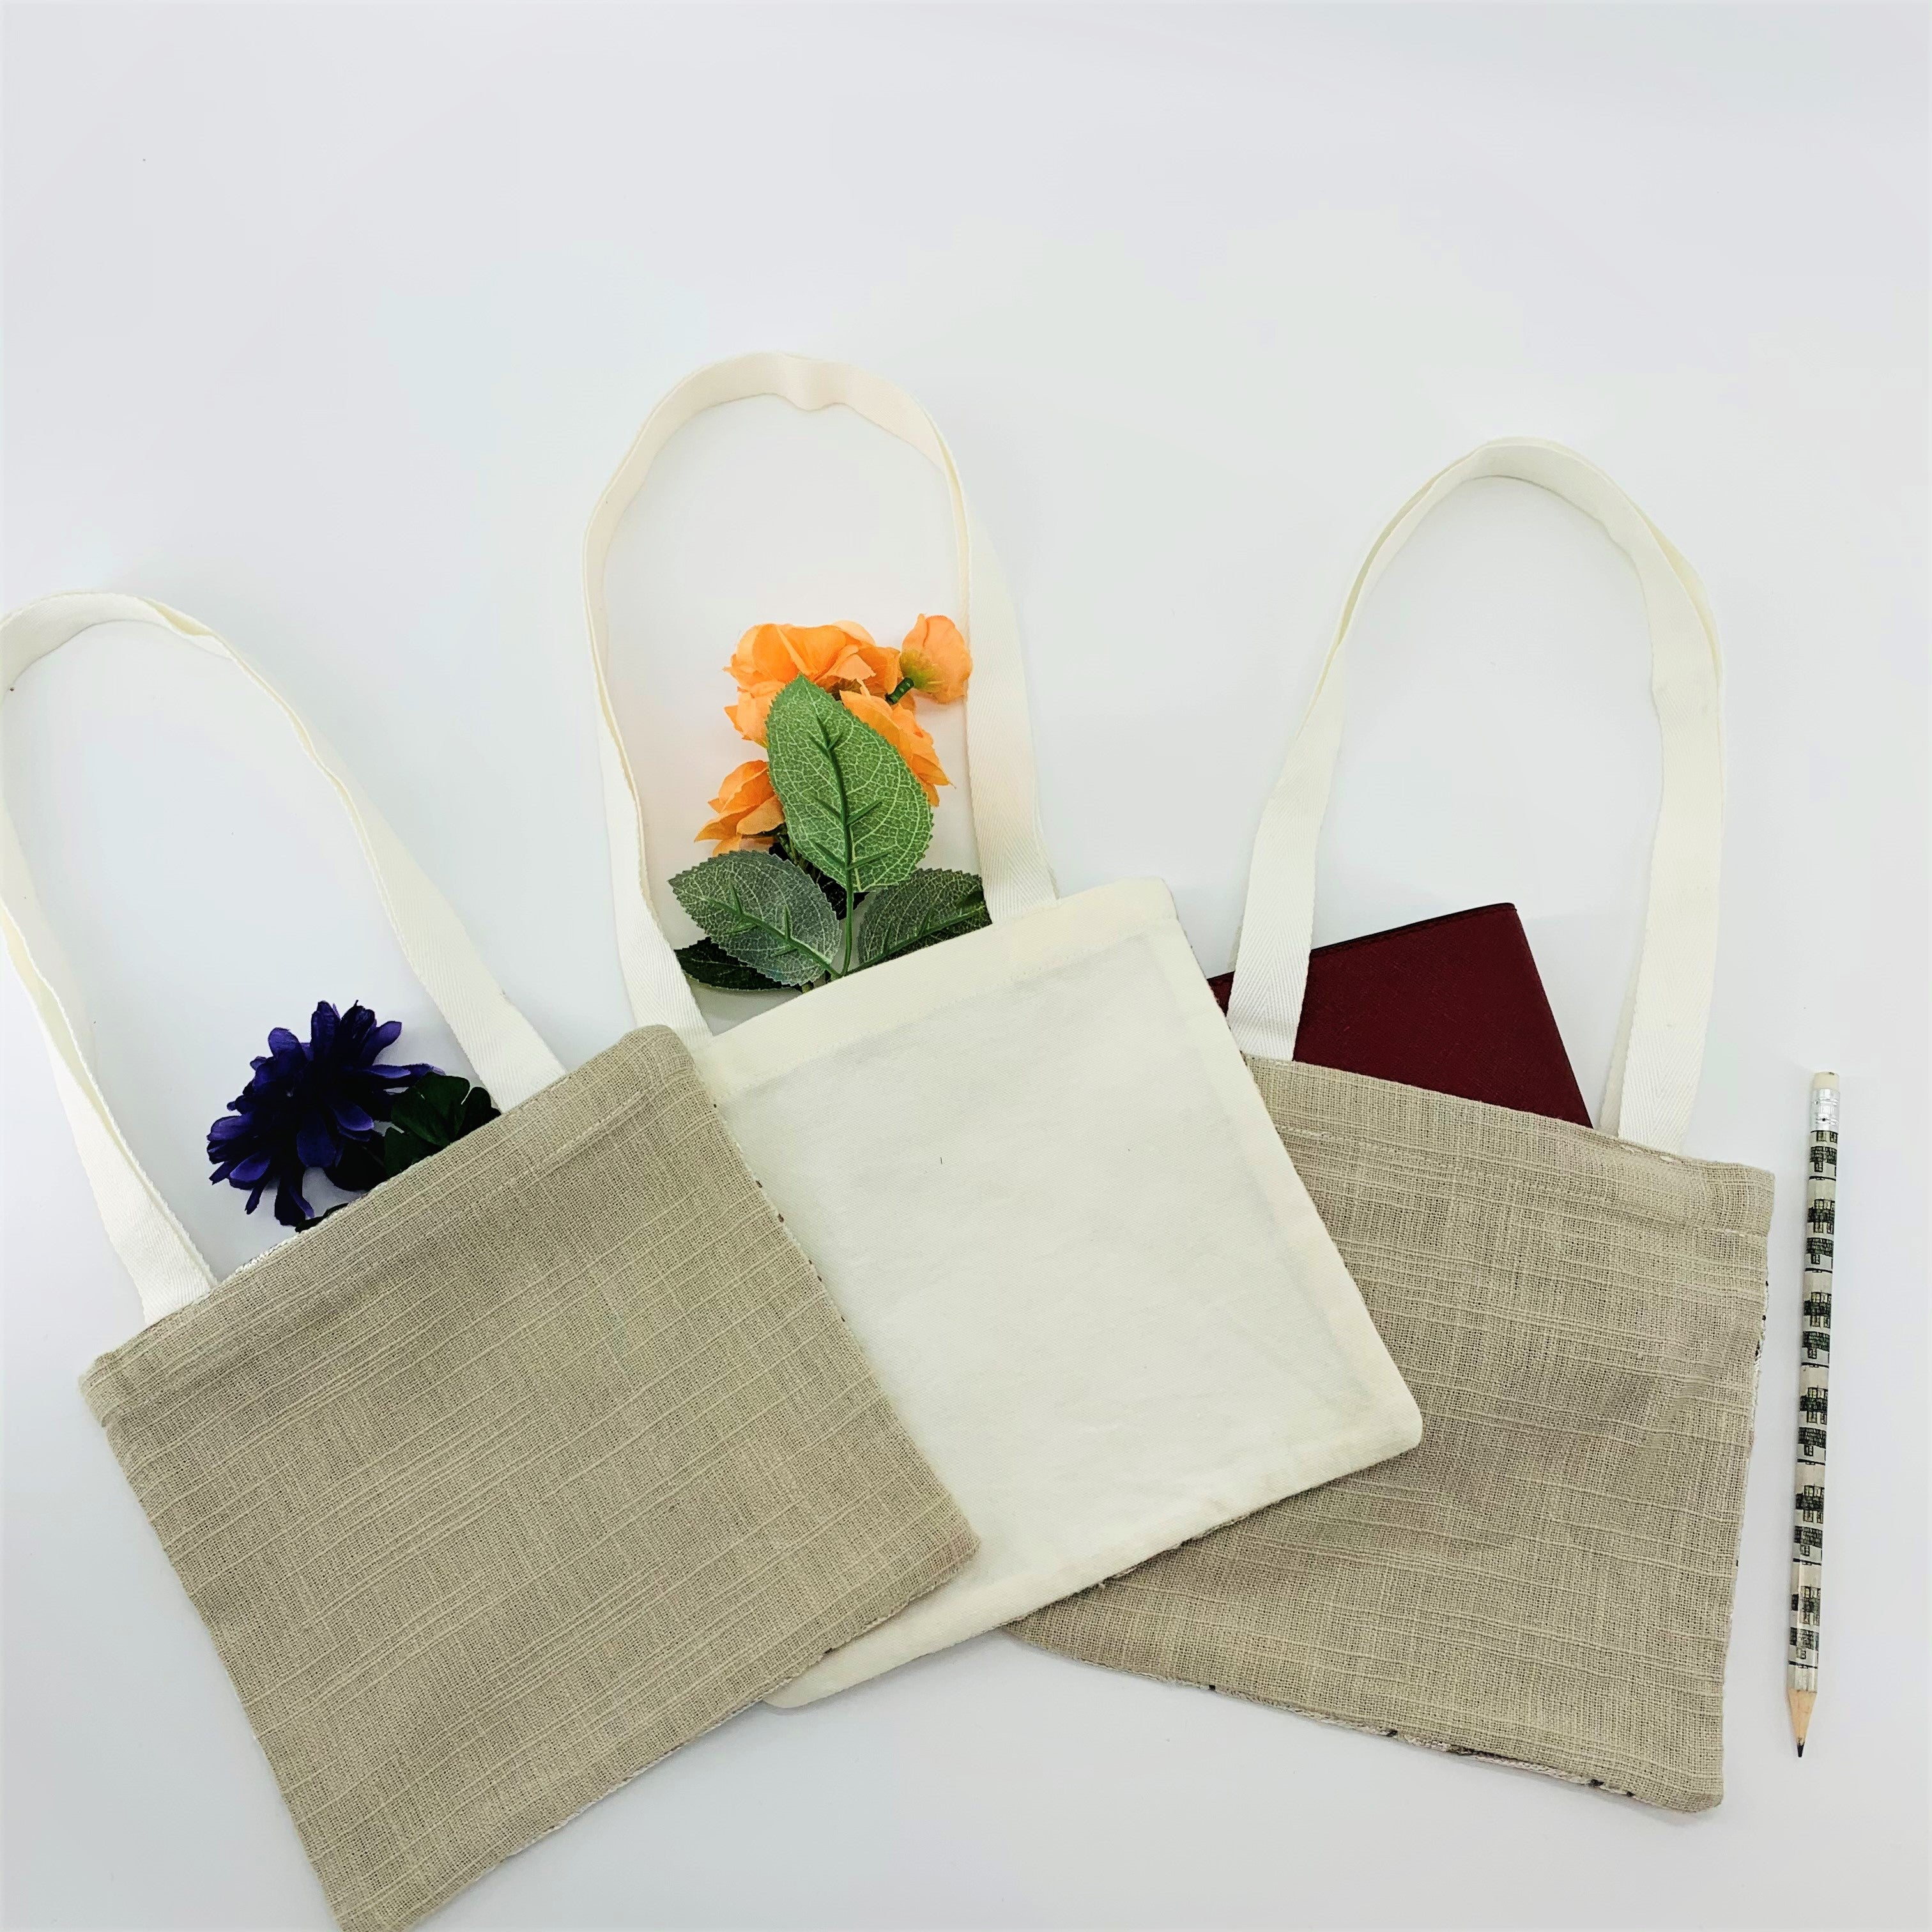 SET OF 3; Eco-Friendly Small Gift Bags; Embroidered in Tan & White